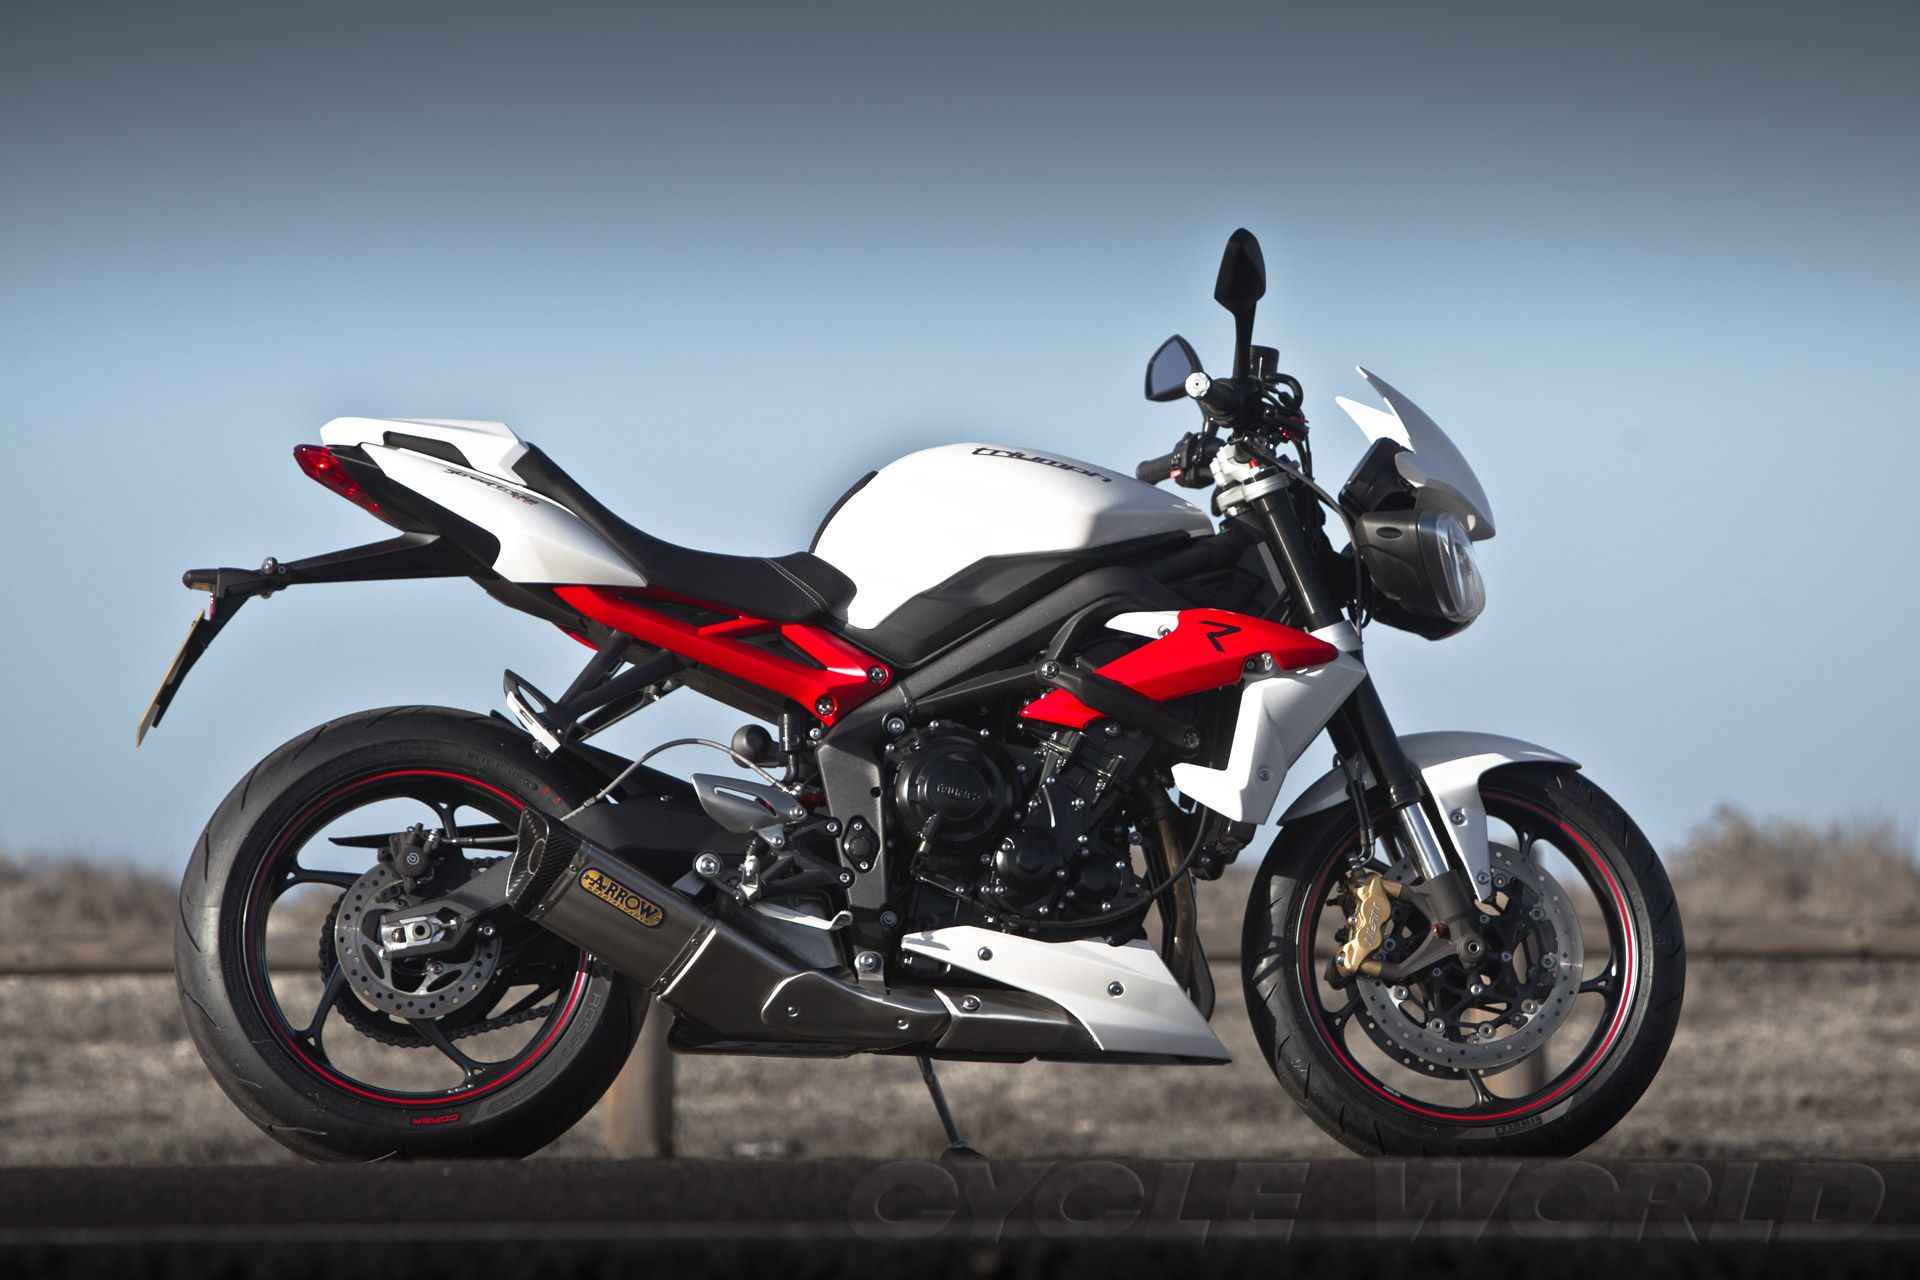 Outstanding Street Triple R In Crystal White With Accessory Flyscreen Ibusinesslaw Wood Chair Design Ideas Ibusinesslaworg